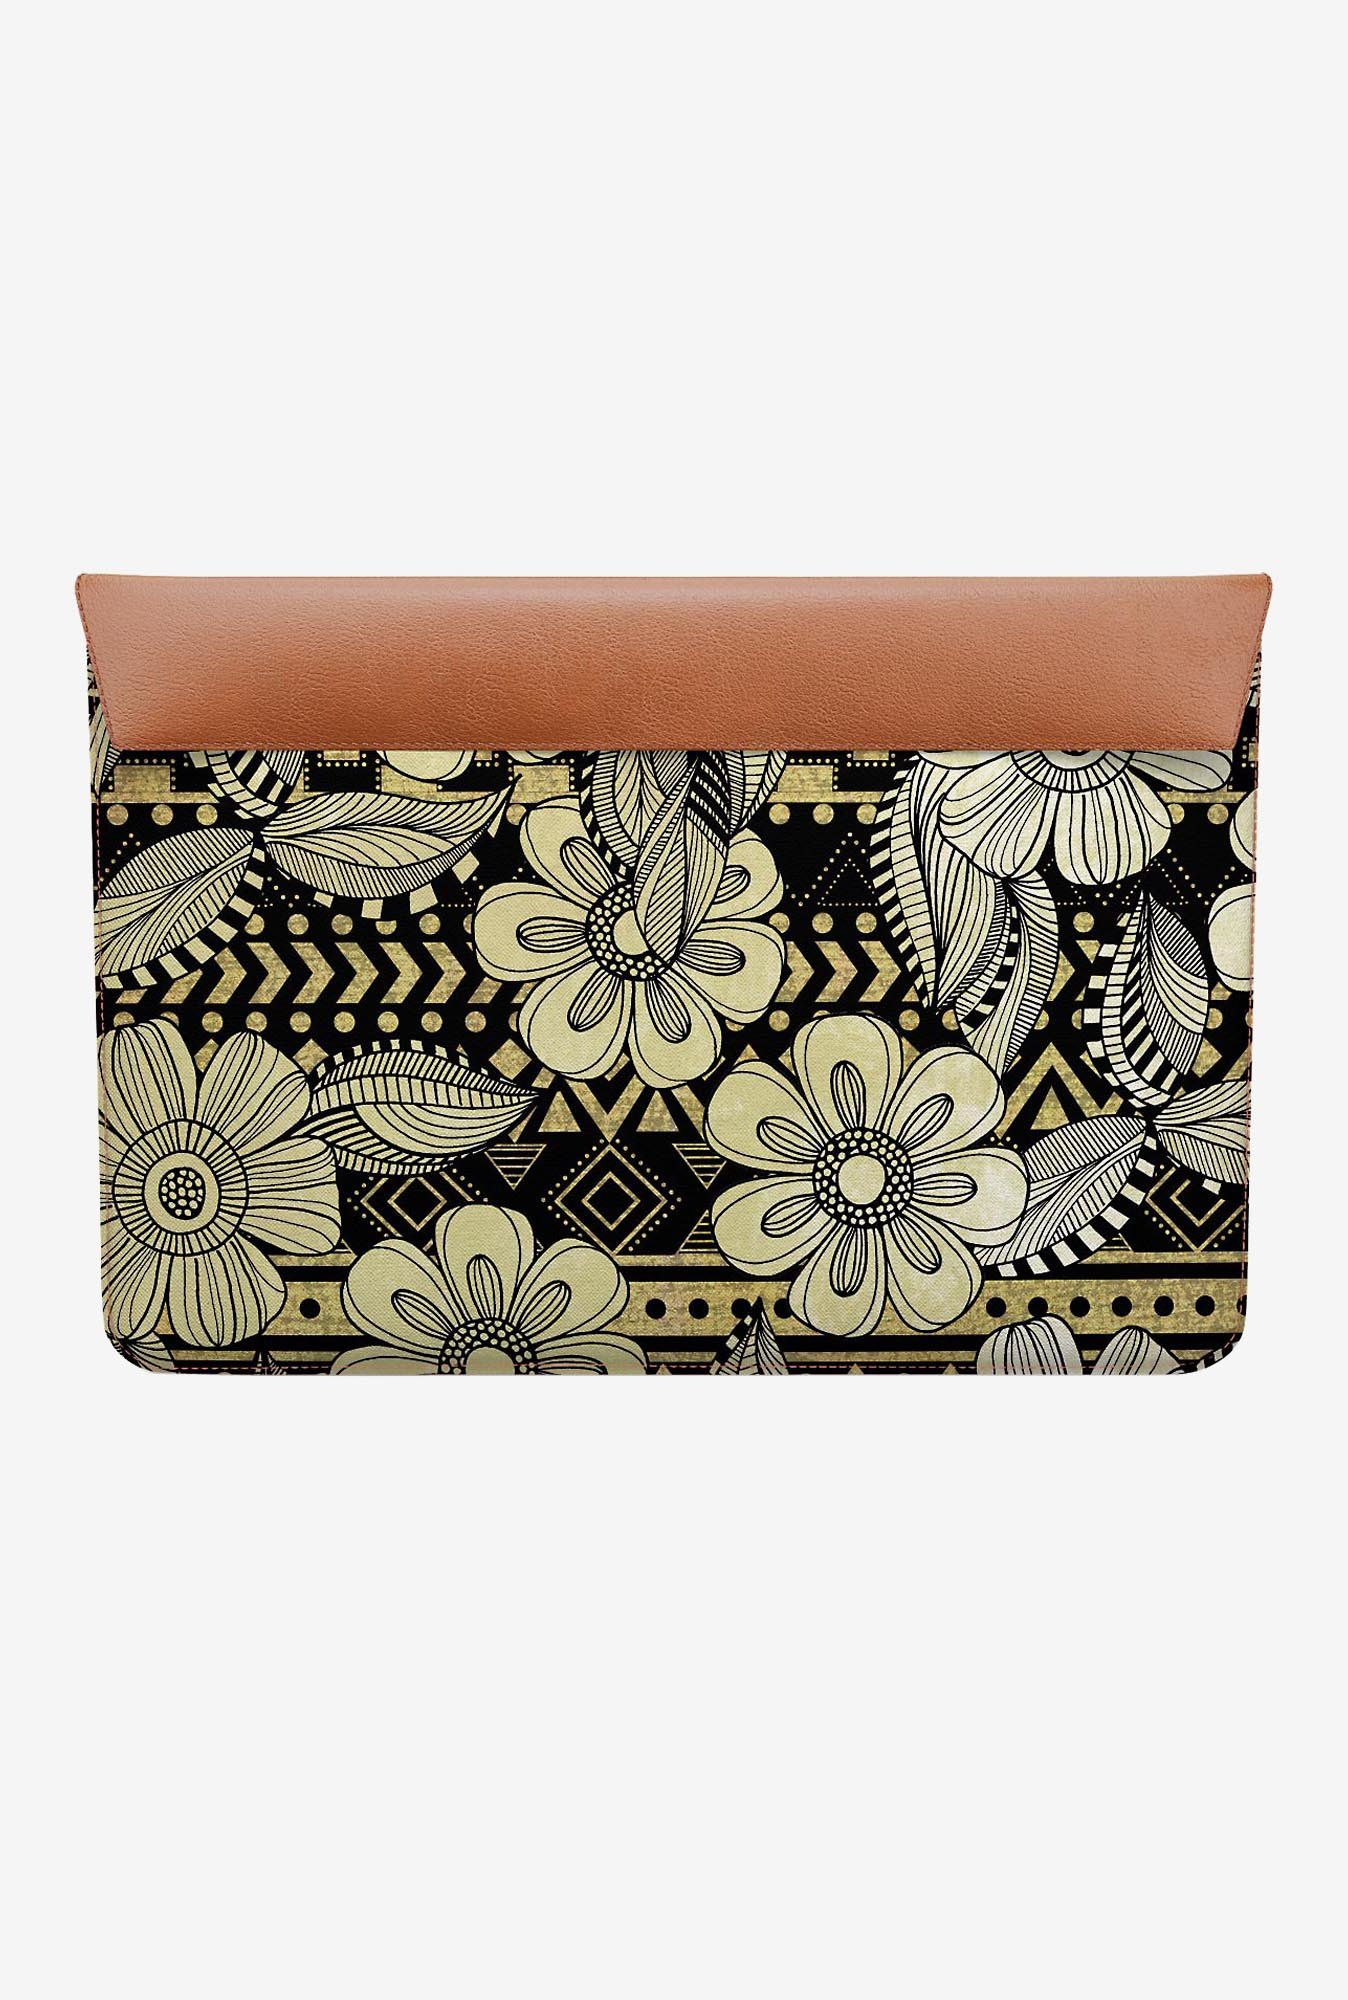 DailyObjects Floral Ink MacBook 12 Envelope Sleeve